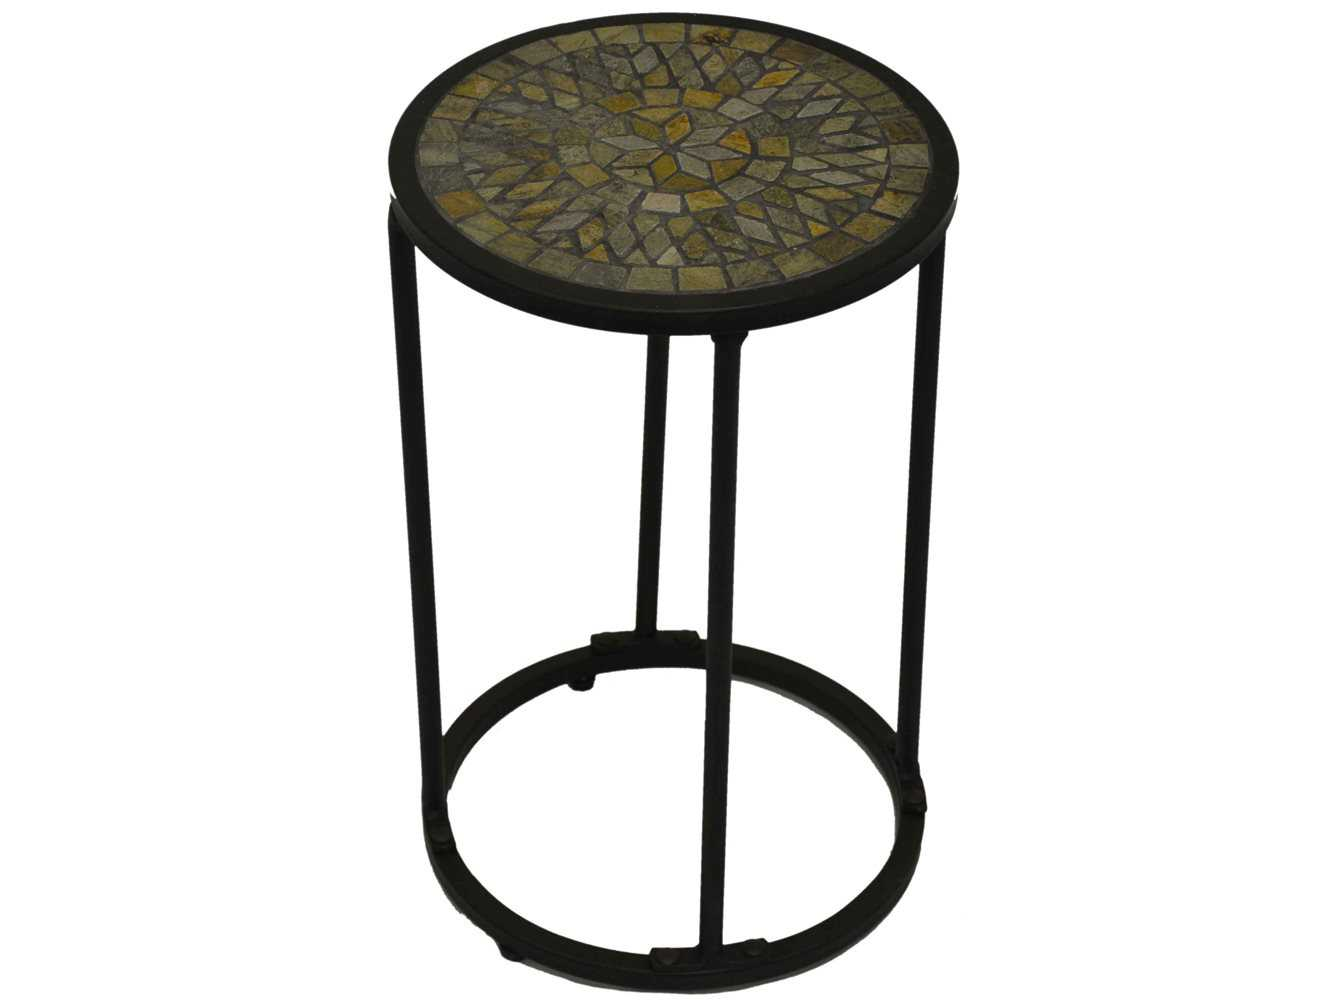 paragon casual odell wrought iron round rosemary accent nesting tables glass top transition pieces for flooring ethan allen used furniture battery operated indoor lights mid